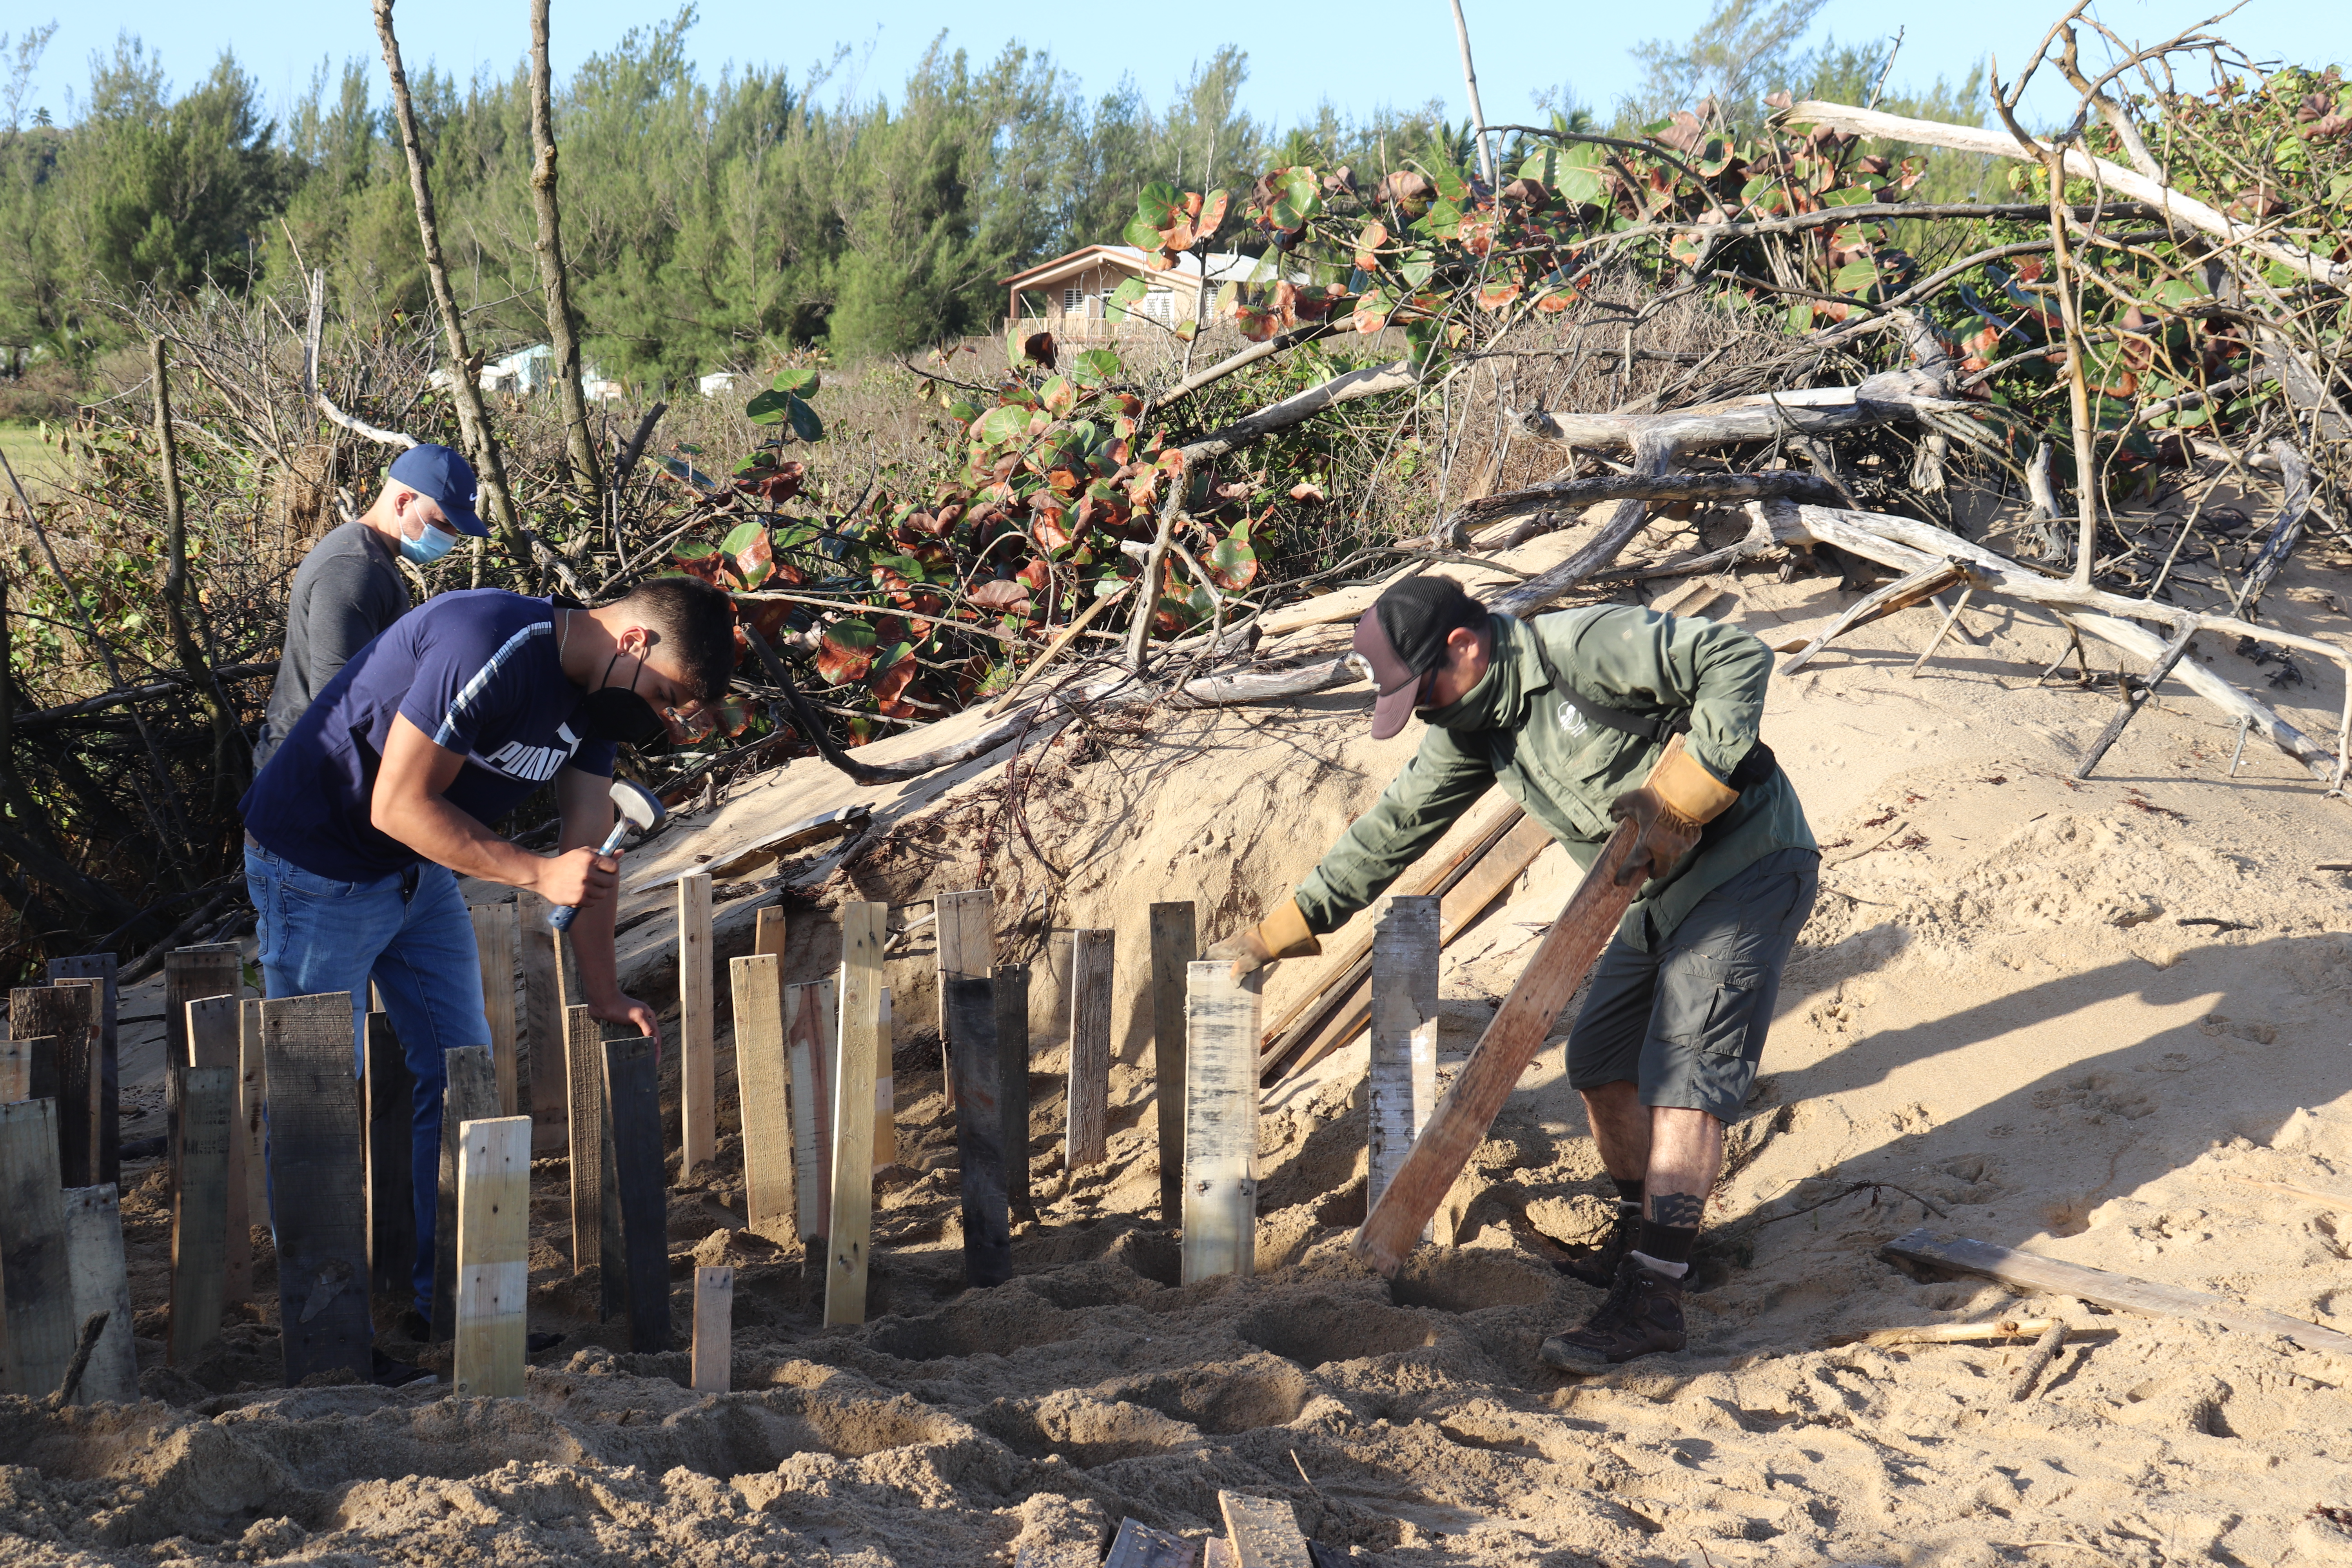 Three workers setting and hammering boards into the sand in Puerto Rico. A sand dune covered in vegetation is in the background.